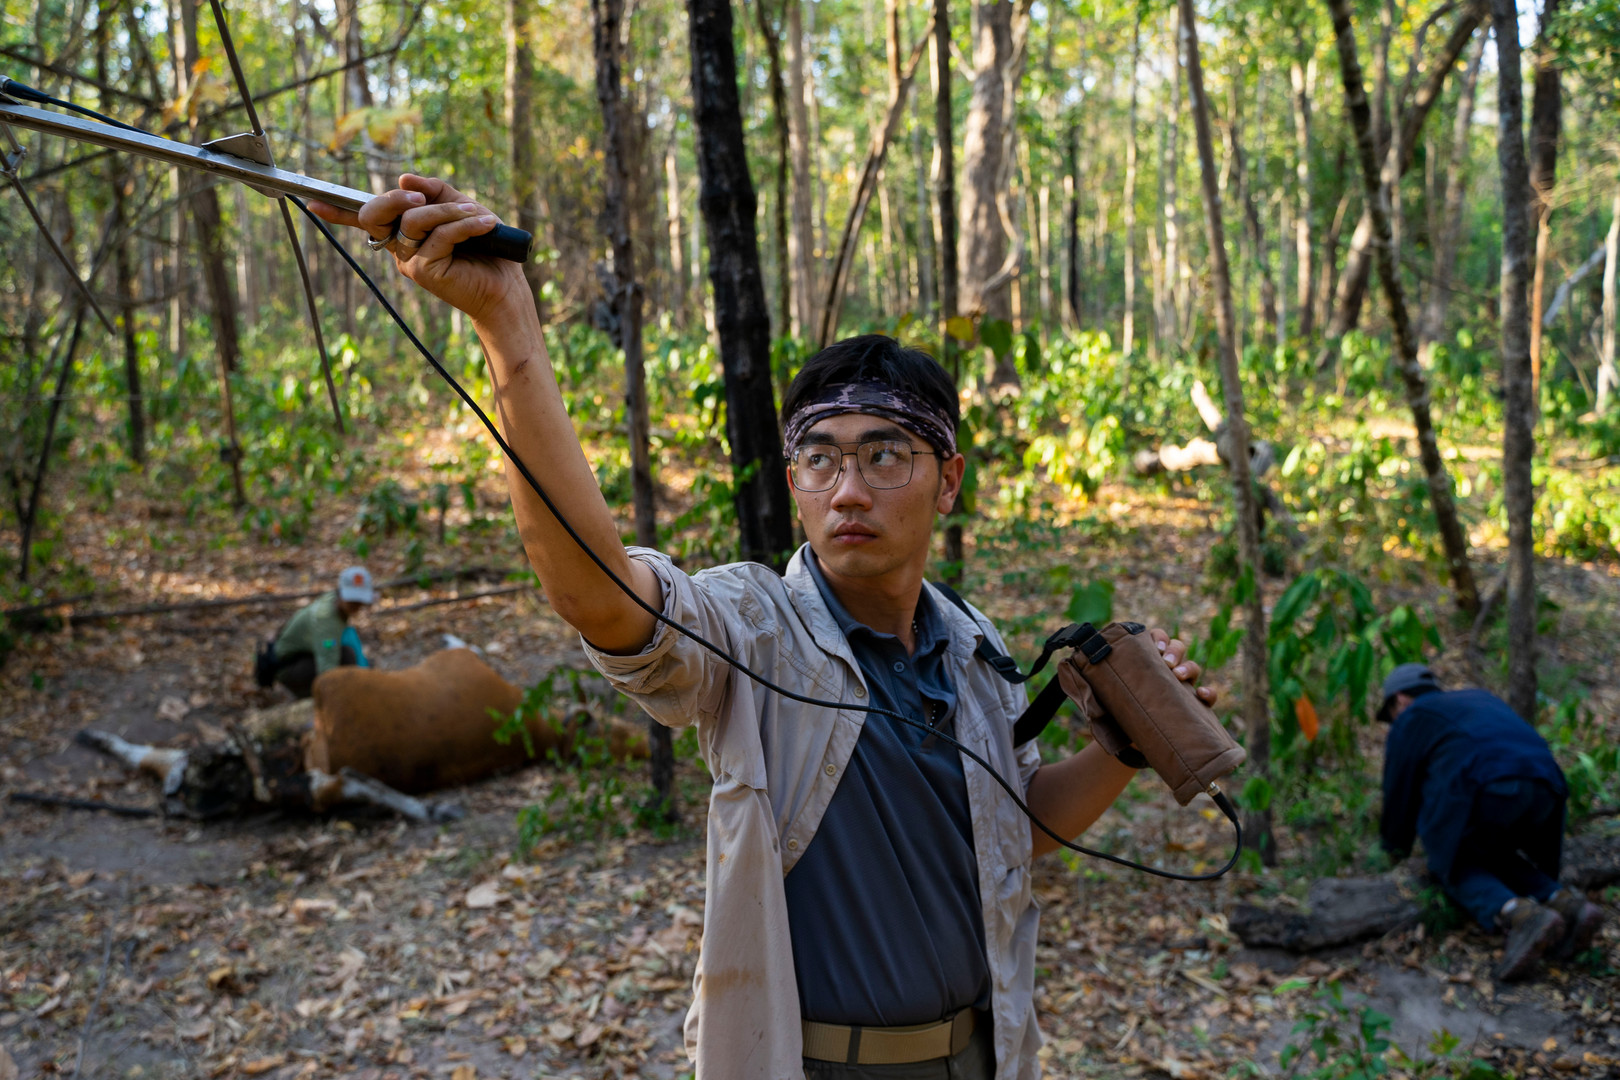 Chanon Chirajitmichai holds up a radio receiver to monitor for nearby collared tigers as snares are set near a Bantang killed the day before. Chorphaka Vijittrakoolchai, left, collects samples from the kill.